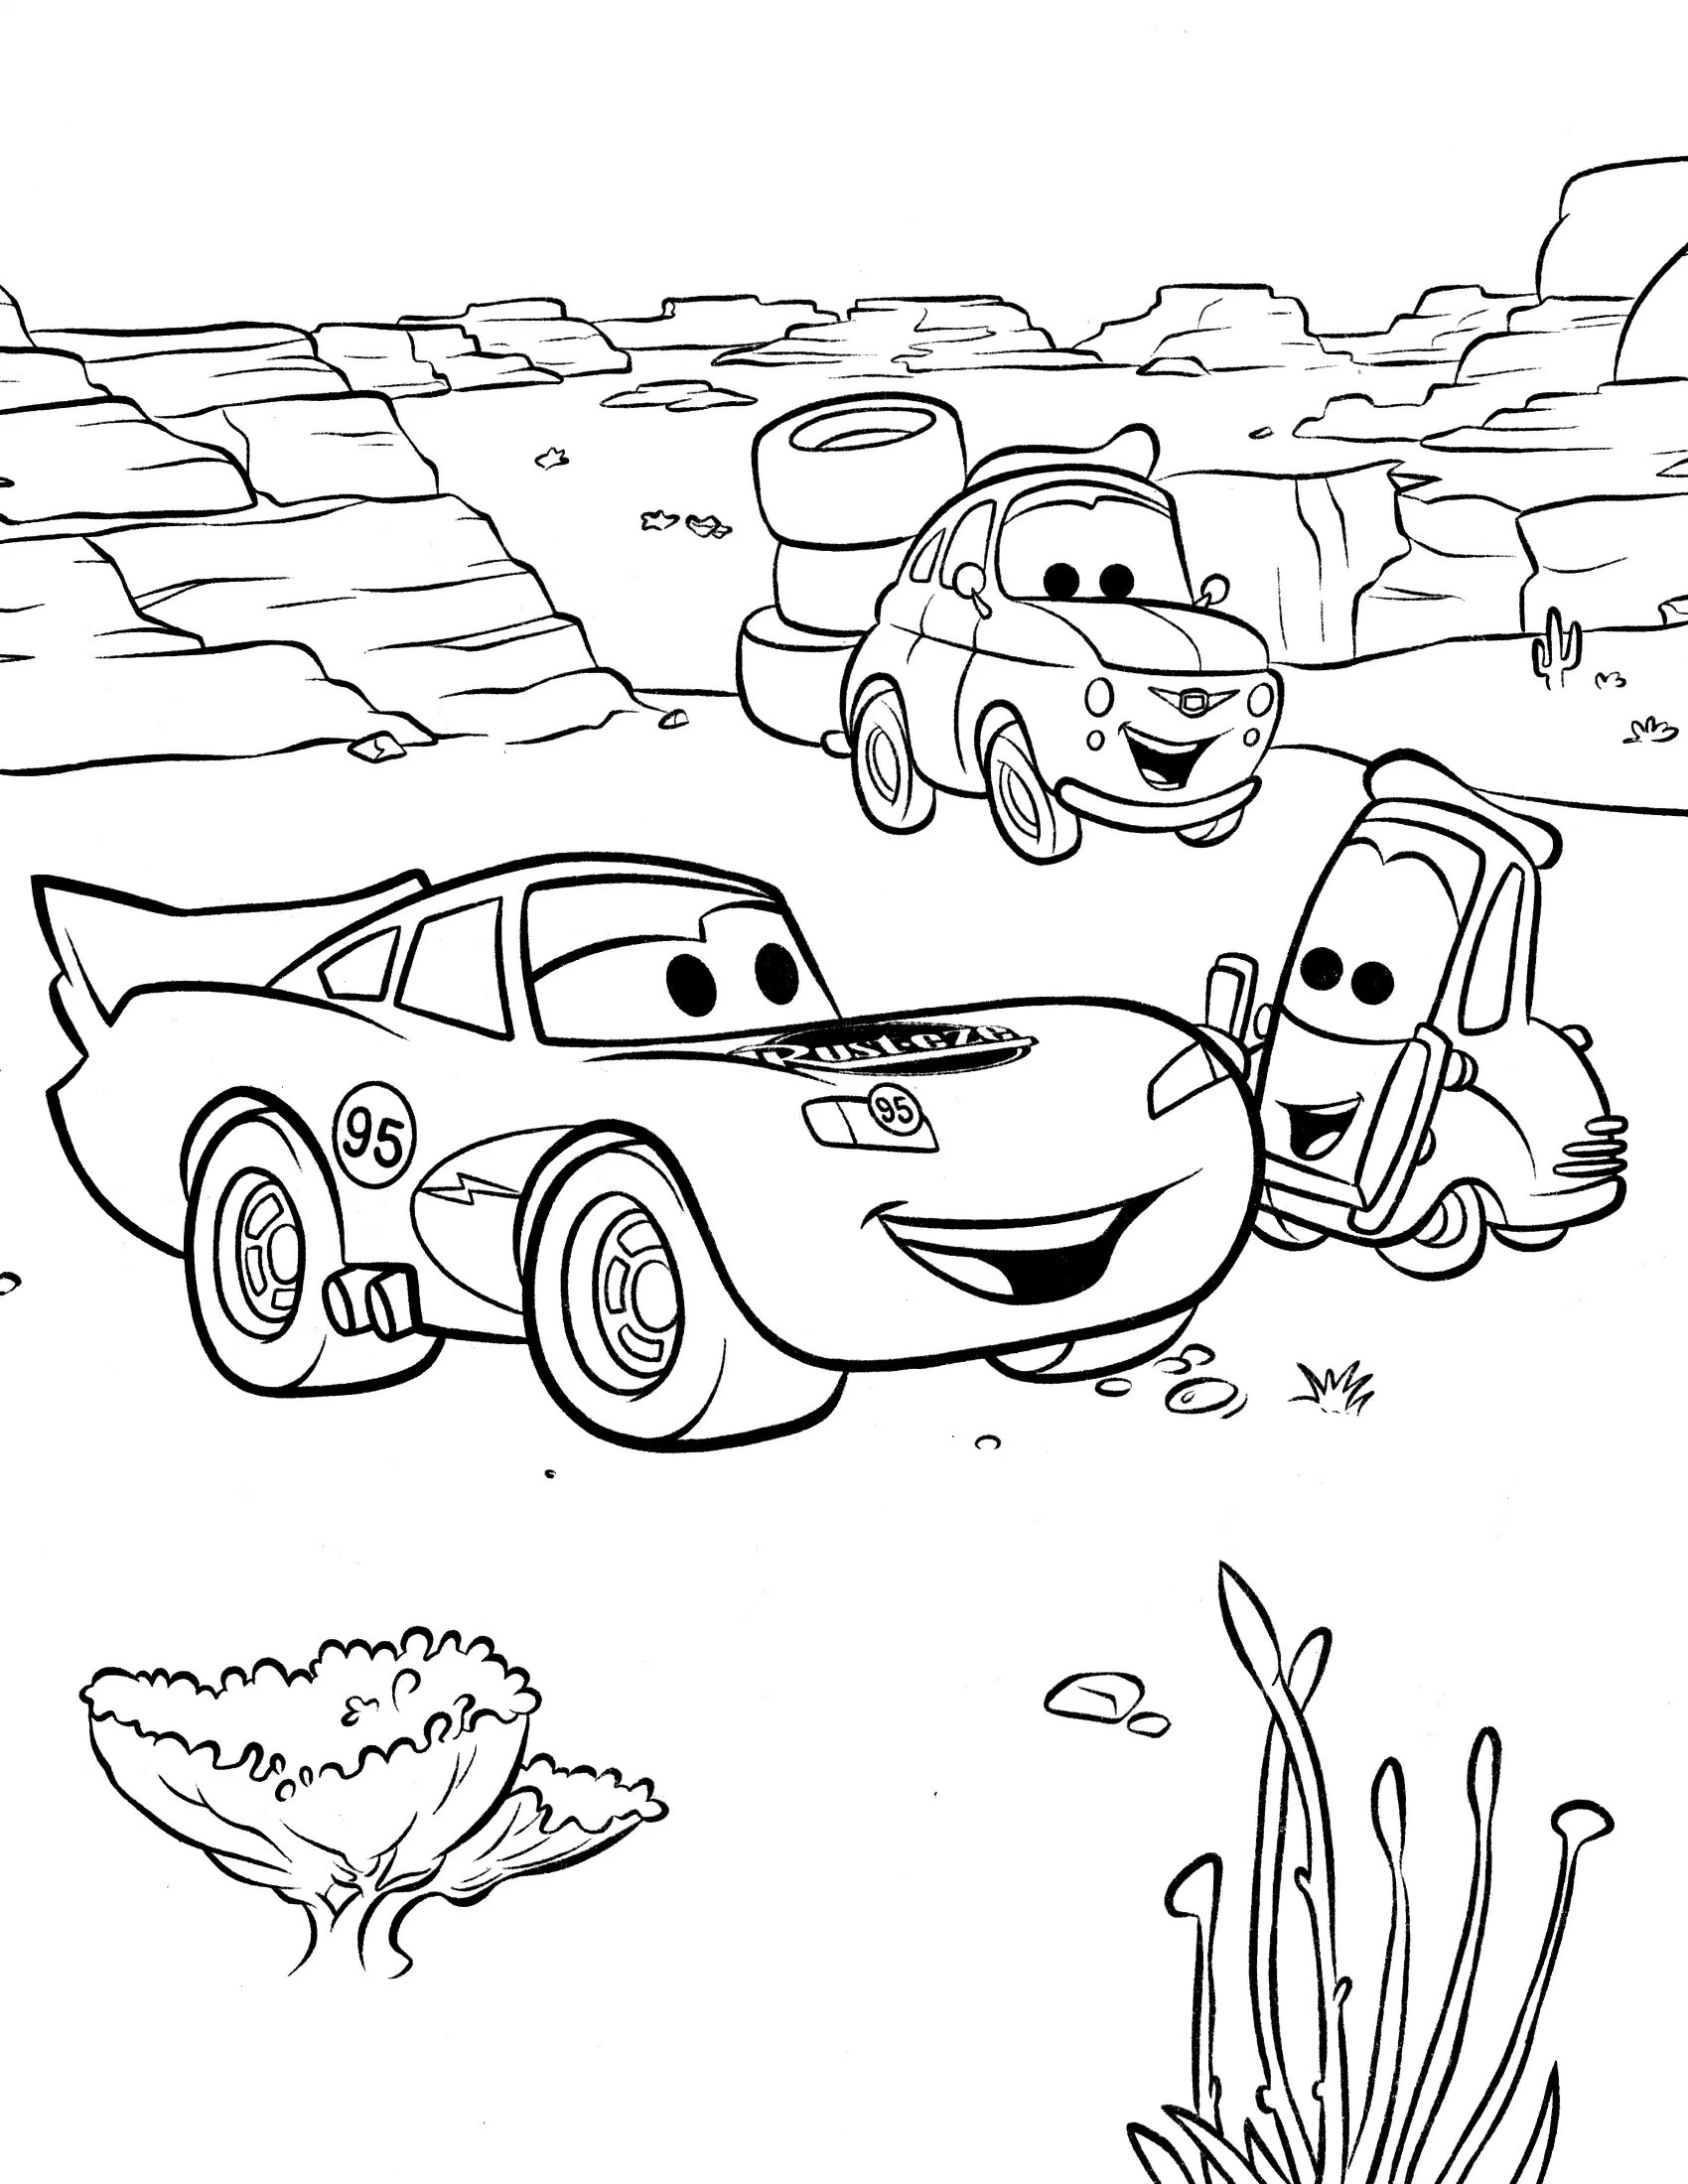 disney cars 2 colouring pictures to print cars 2 to color for kids cars 2 kids coloring pages print cars 2 to disney colouring pictures